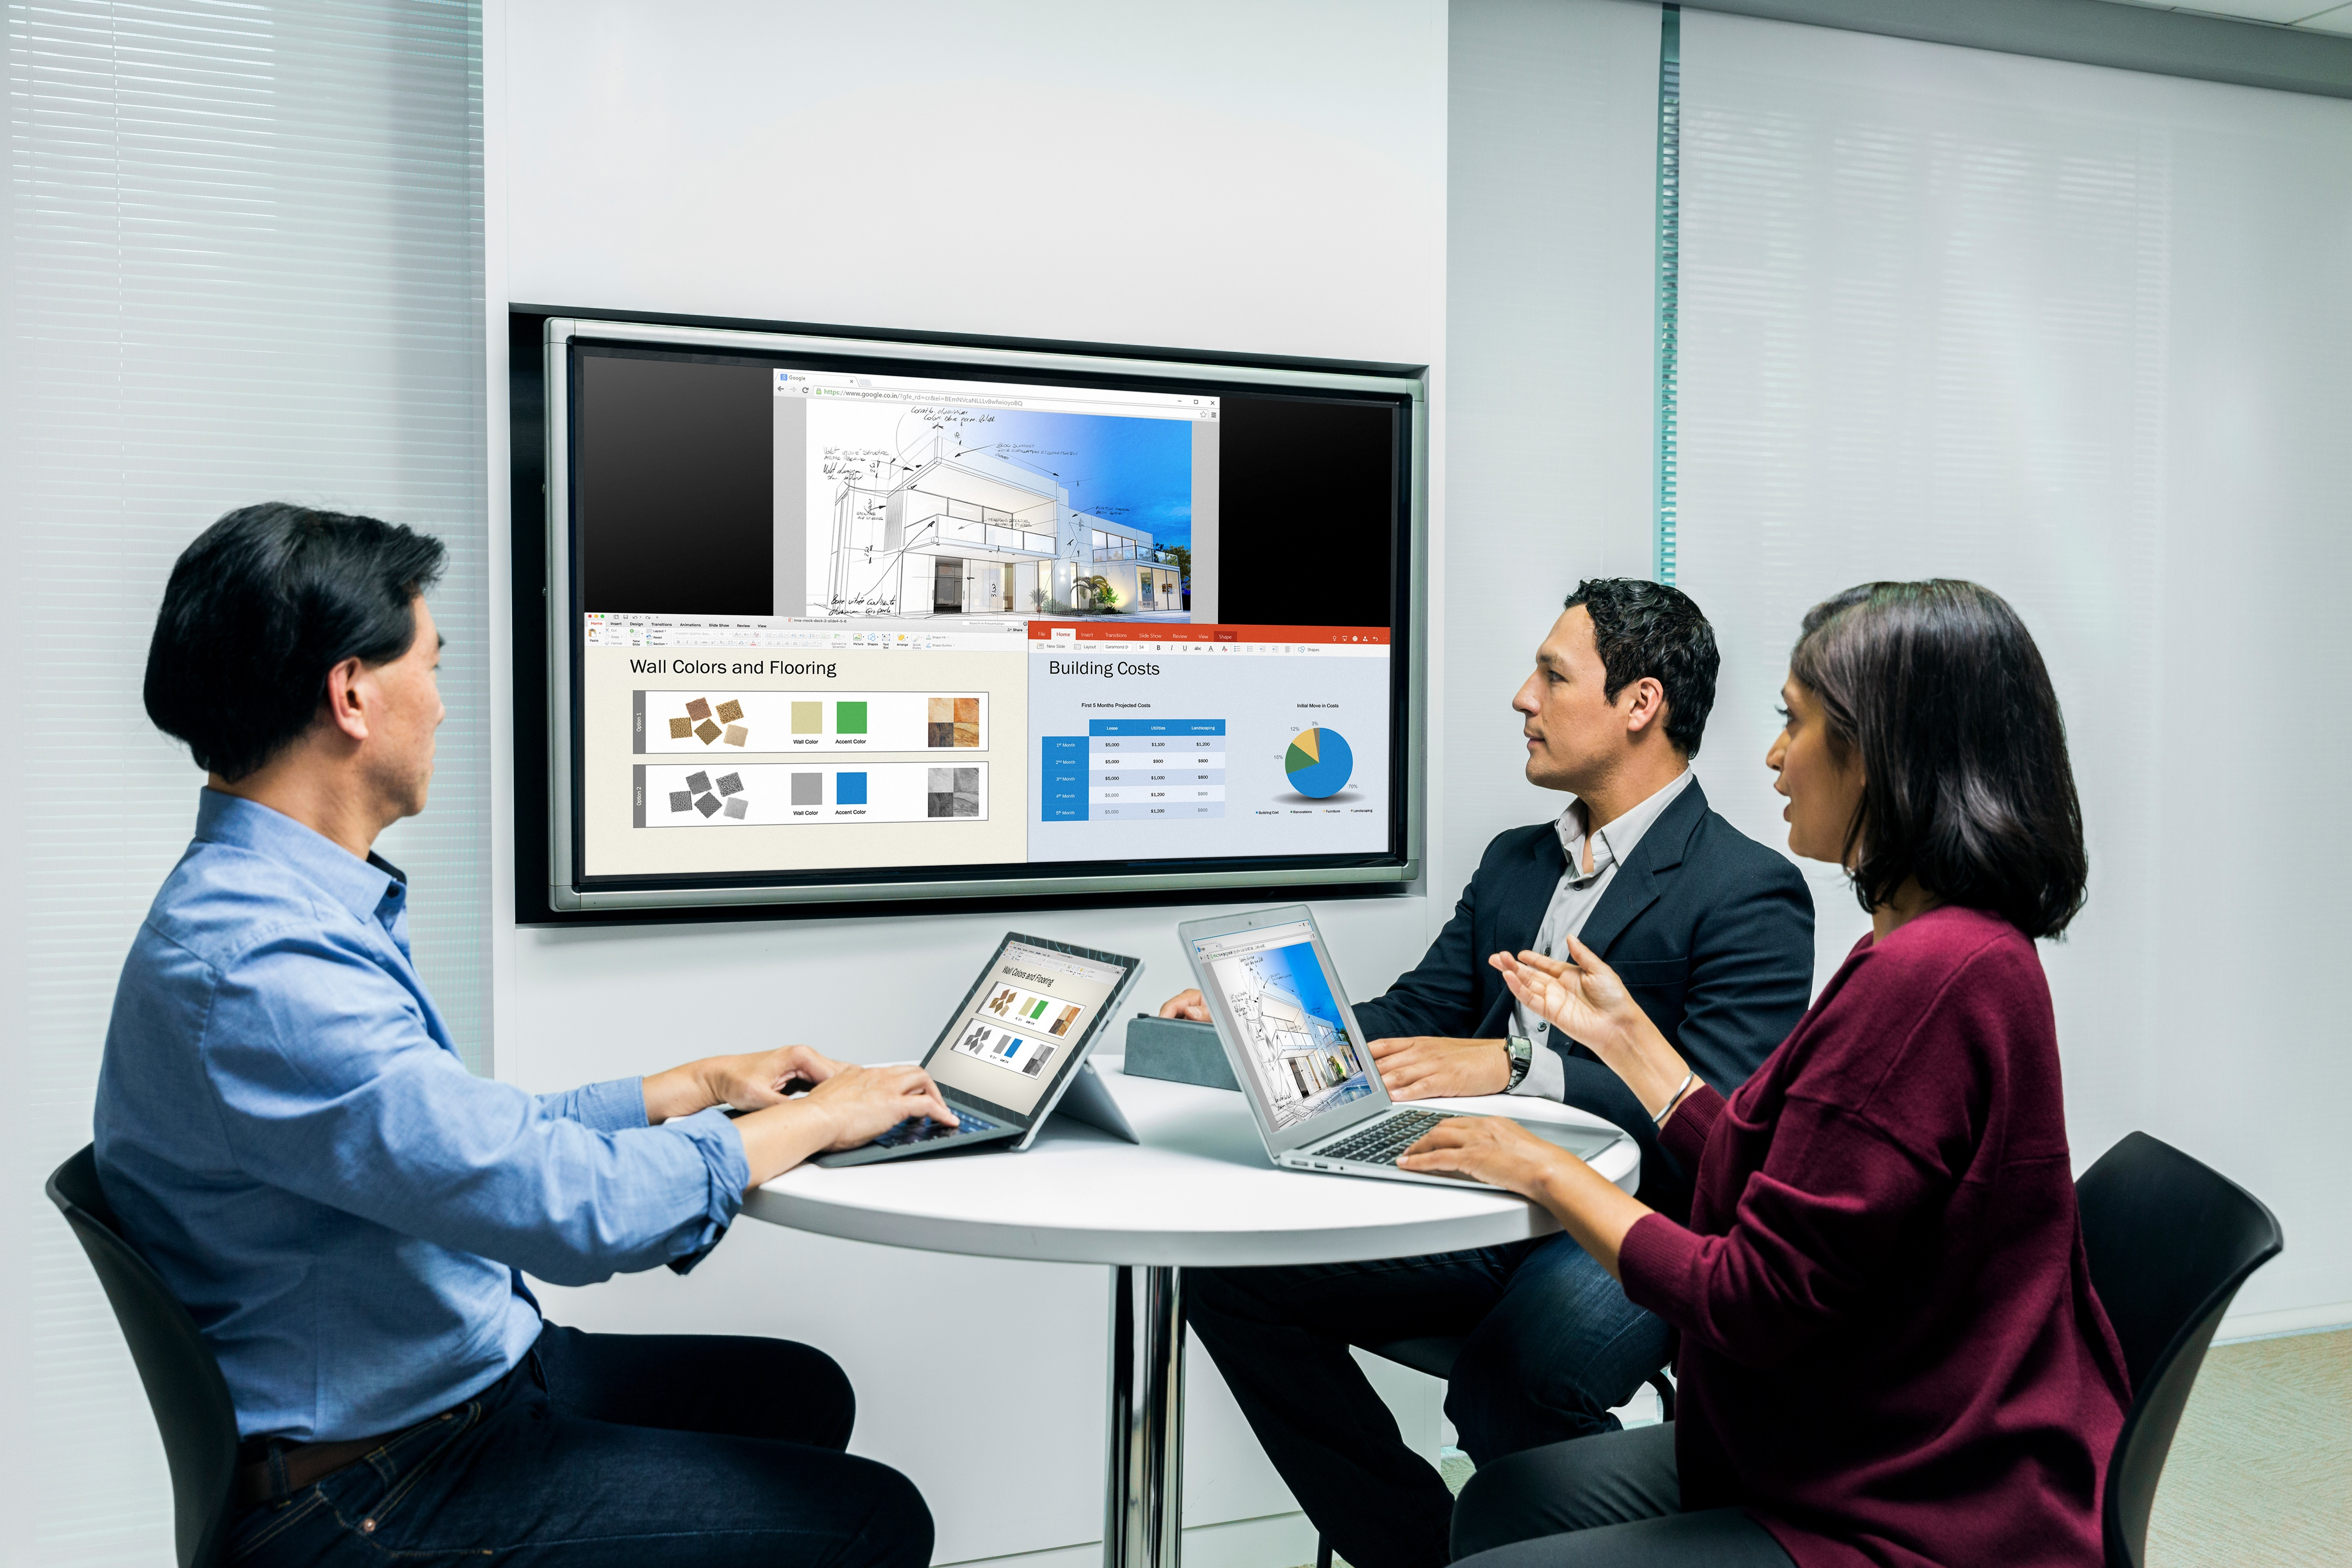 The new Polycom Pano is the easiest way to share content in a business meeting and can share up to four streams of simultaneous content side-by-side, from any device, without the hassle of juggling cables, pucks or dongles. (Photo: Business Wire)